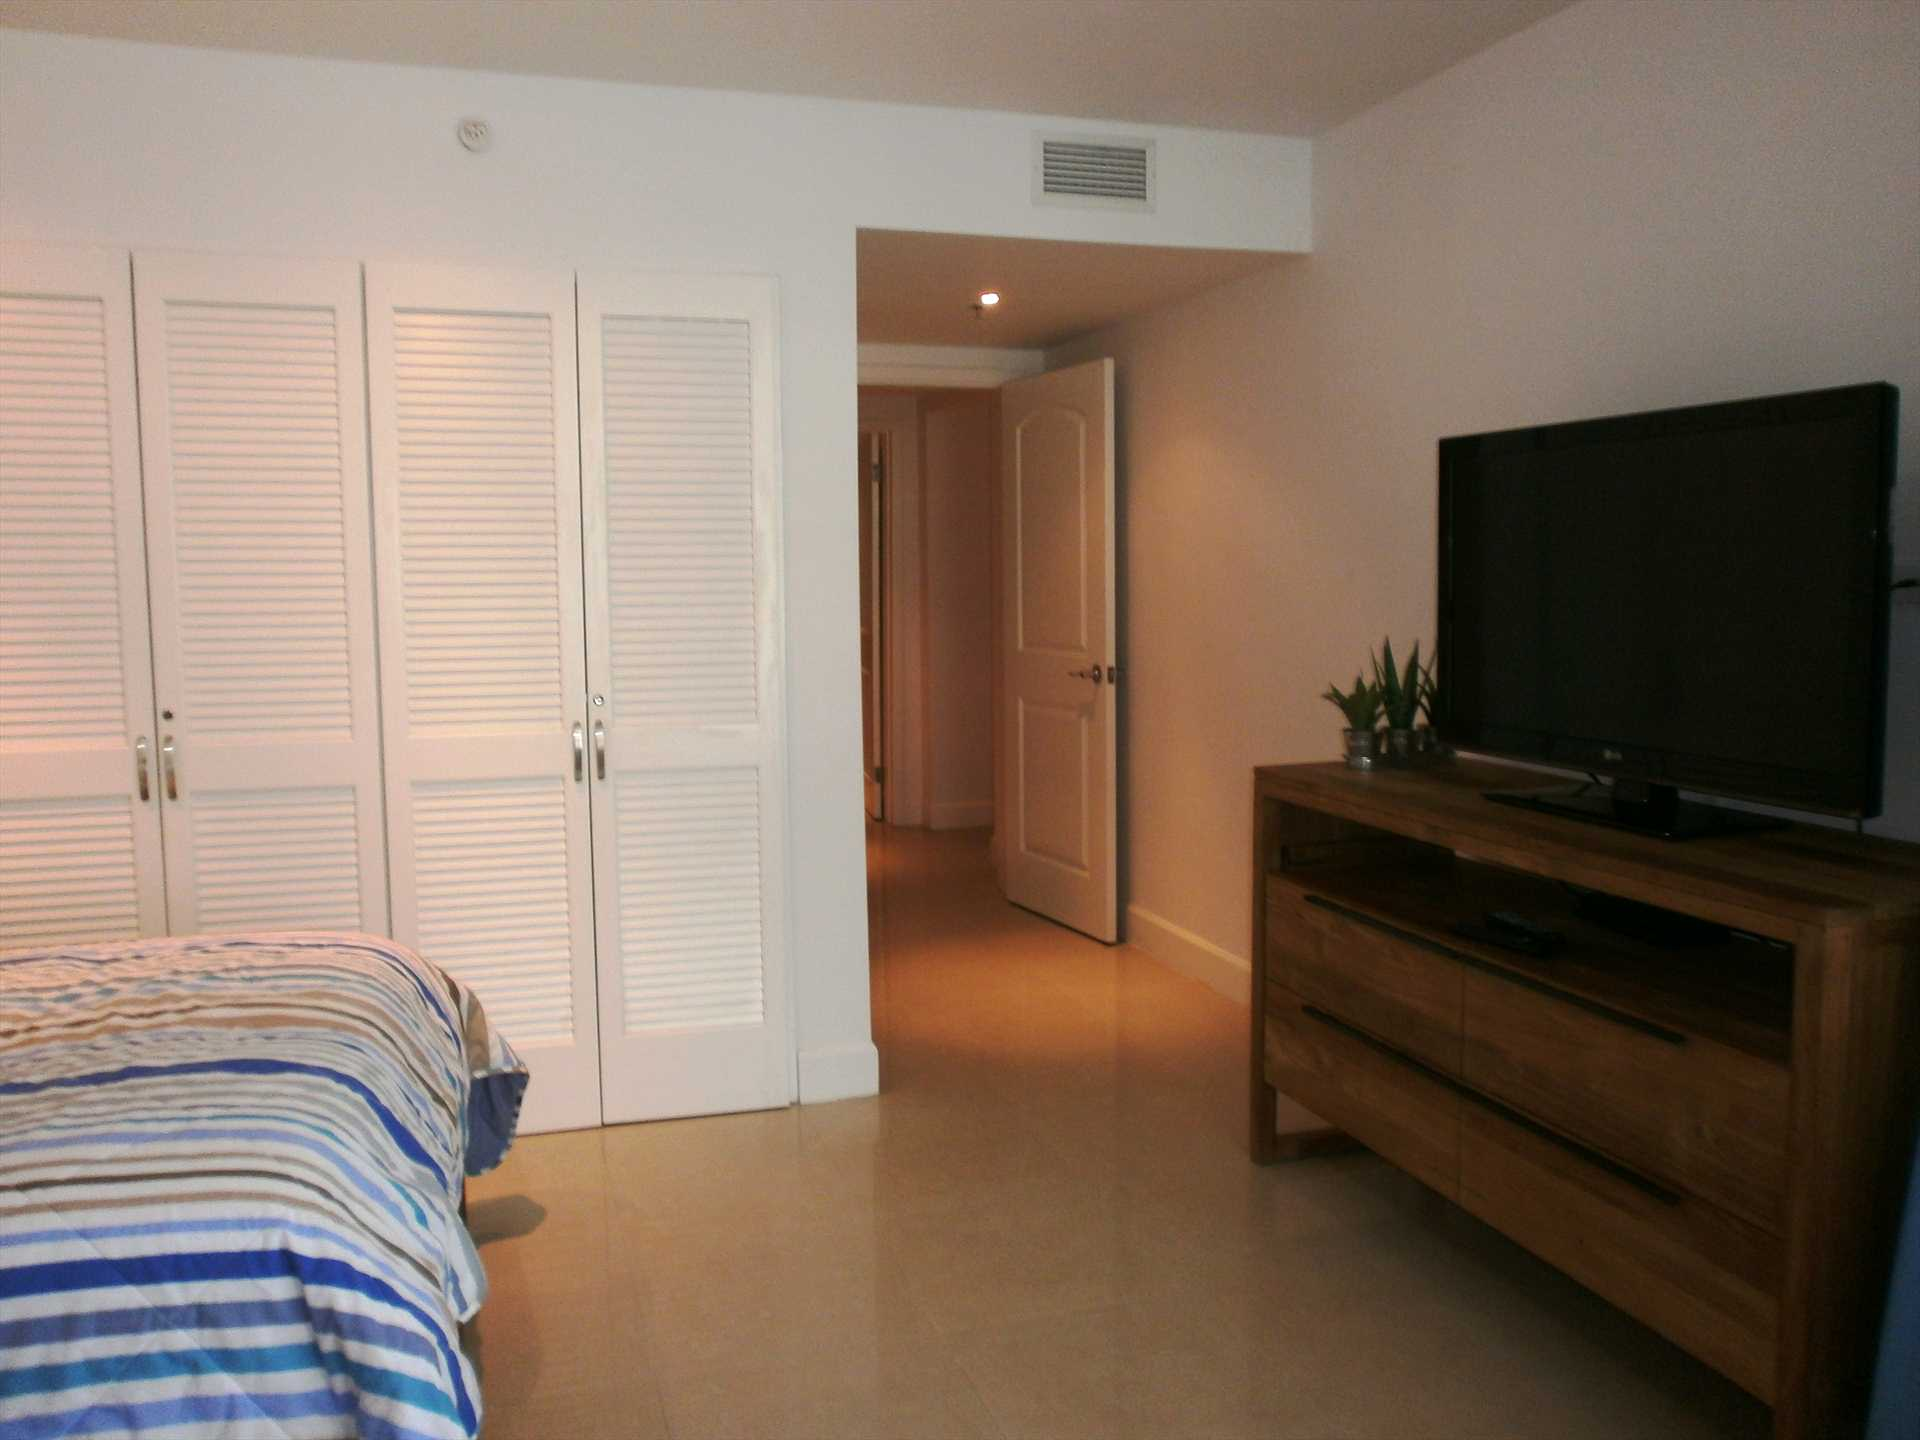 TV and built-in closet in second bedroom